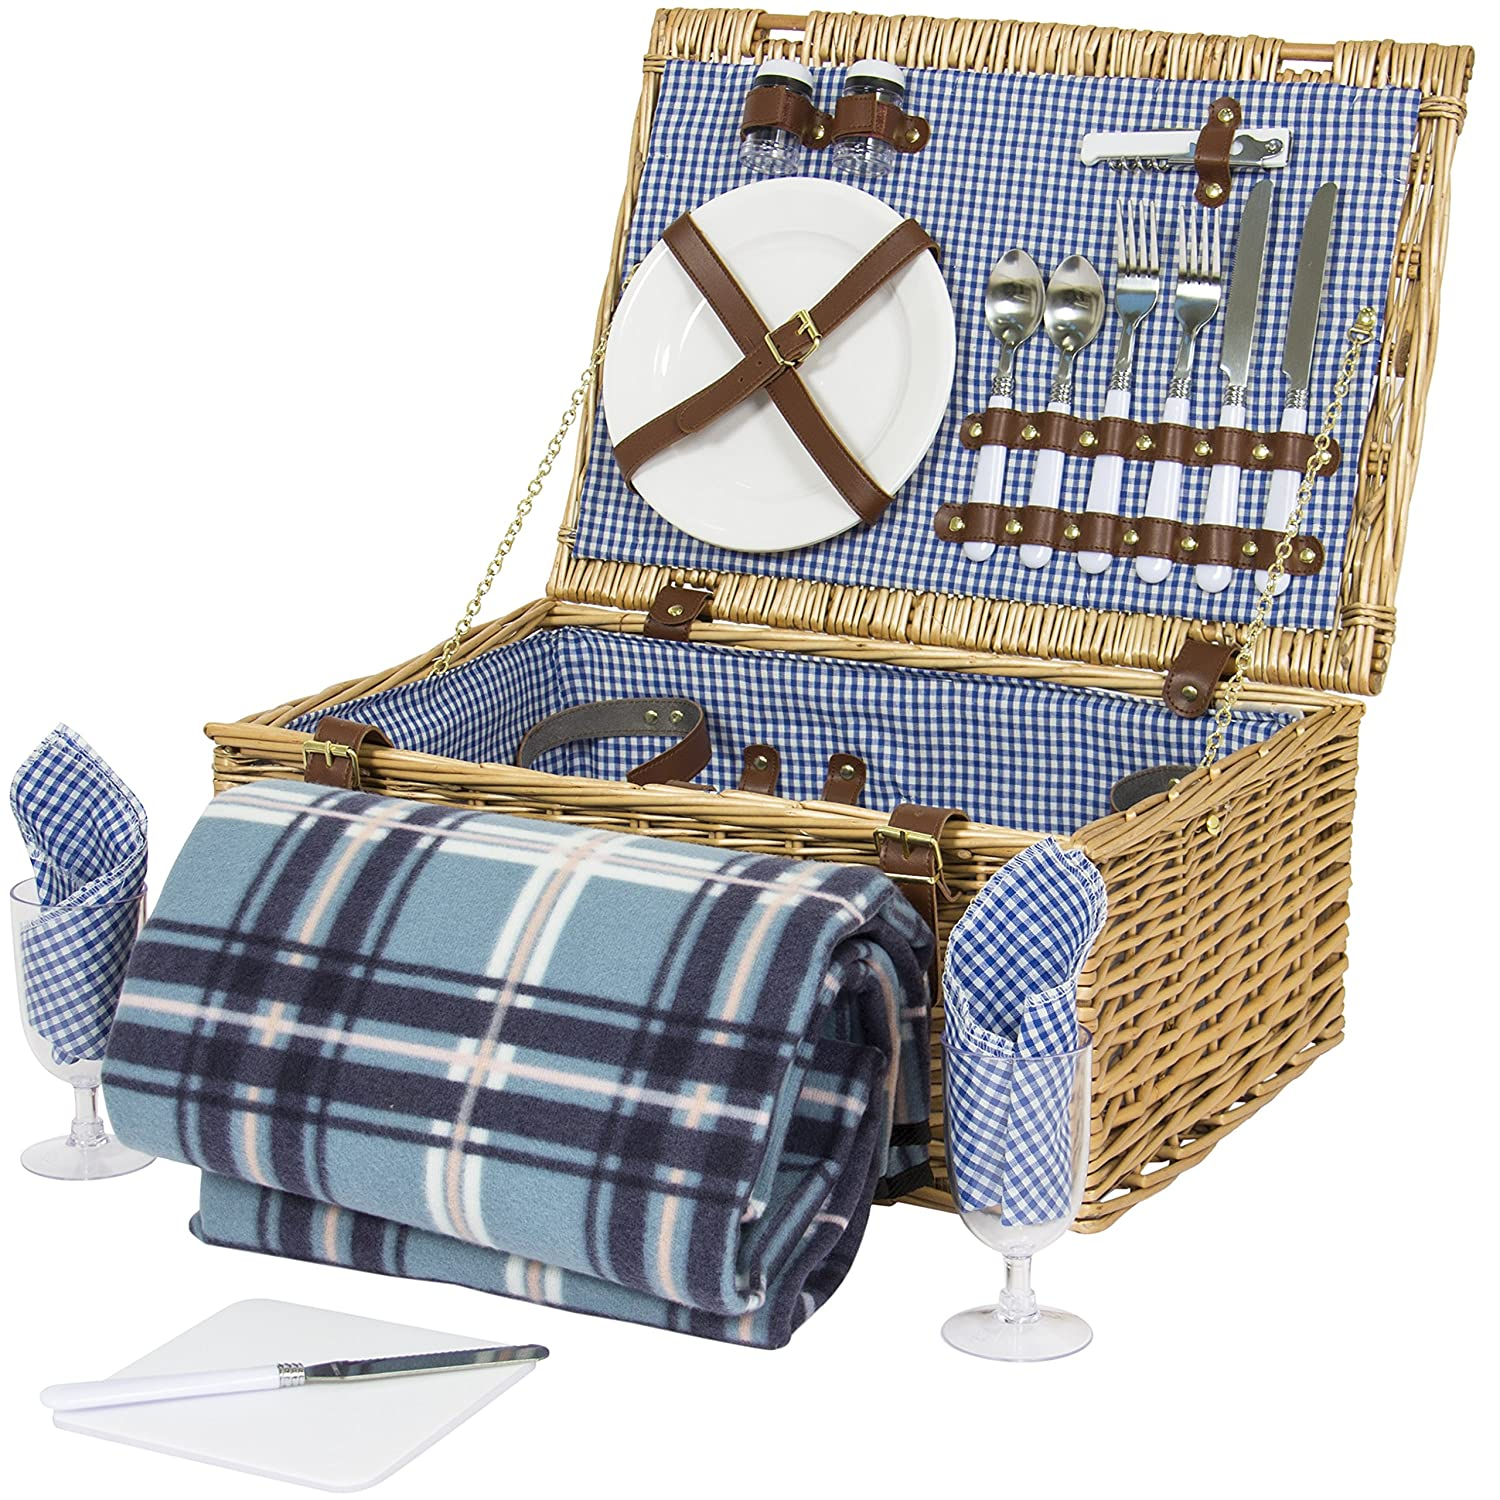 Amazon.com : Best Choice Products 2 Person Wicker Picnic Basket W/ Cutlery,  Plates, Glasses, Tableware U0026 Blanket : Garden U0026 Outdoor